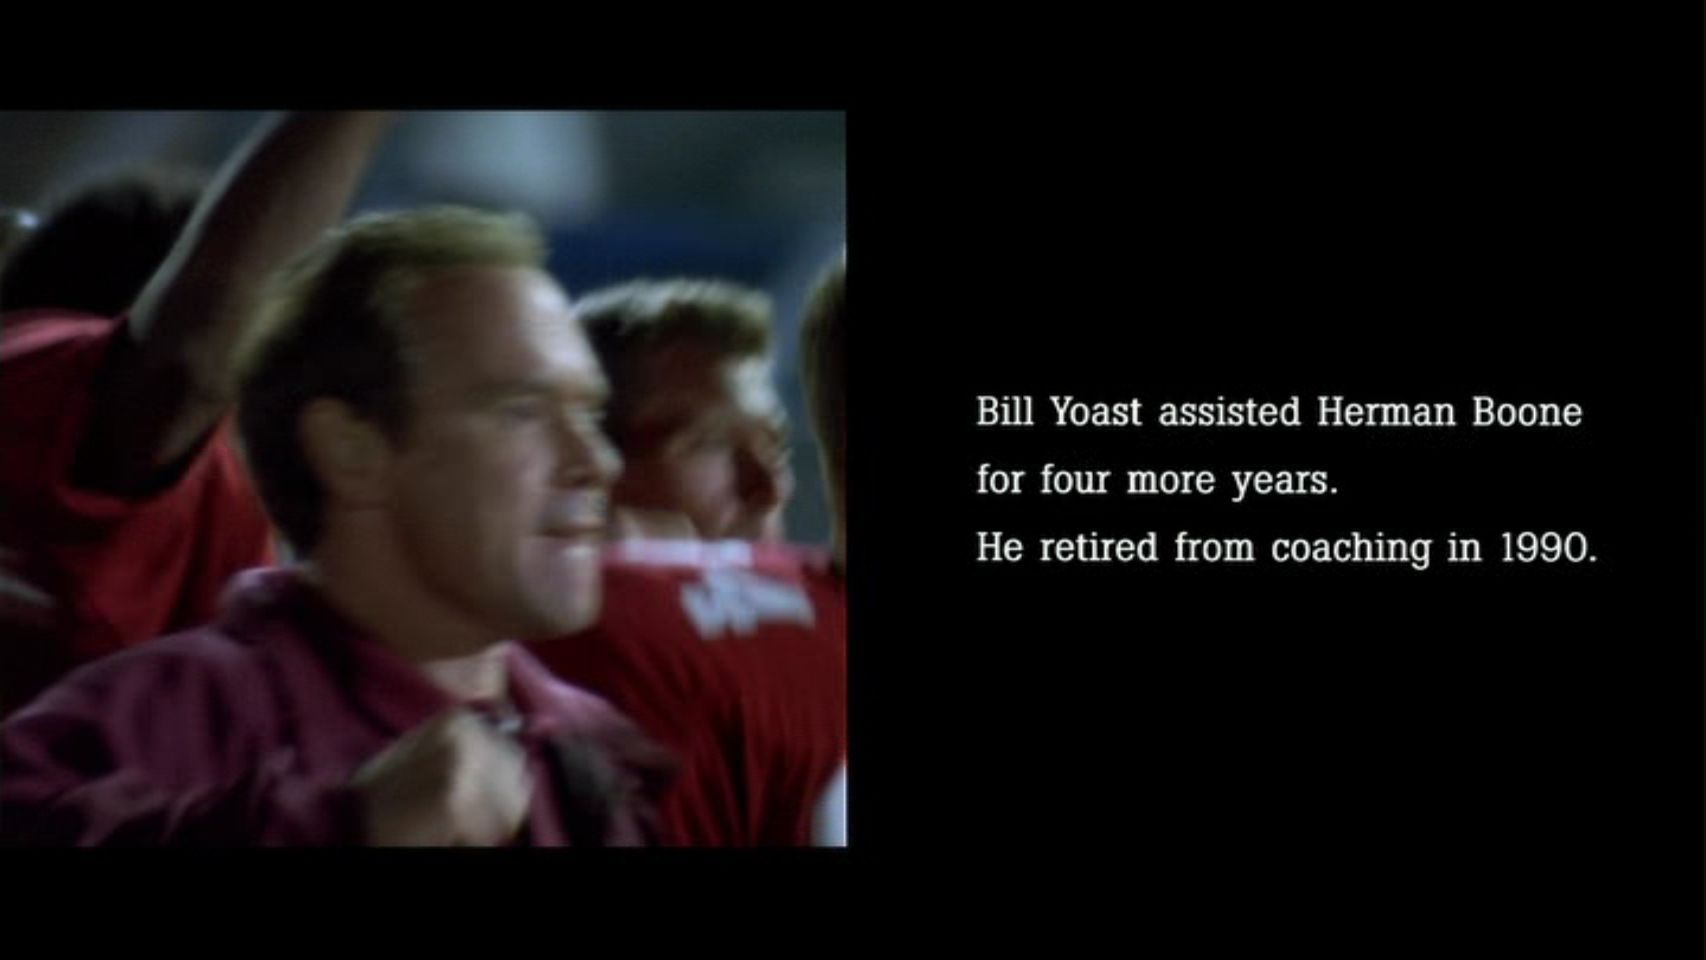 leadership and the film remember the Download file leadership in film - remember the titans to see previous pages respect for the team as a whole and self respect helped the team captain come to that decision when a leader has respect of his men and himself, then a winning team is the result.